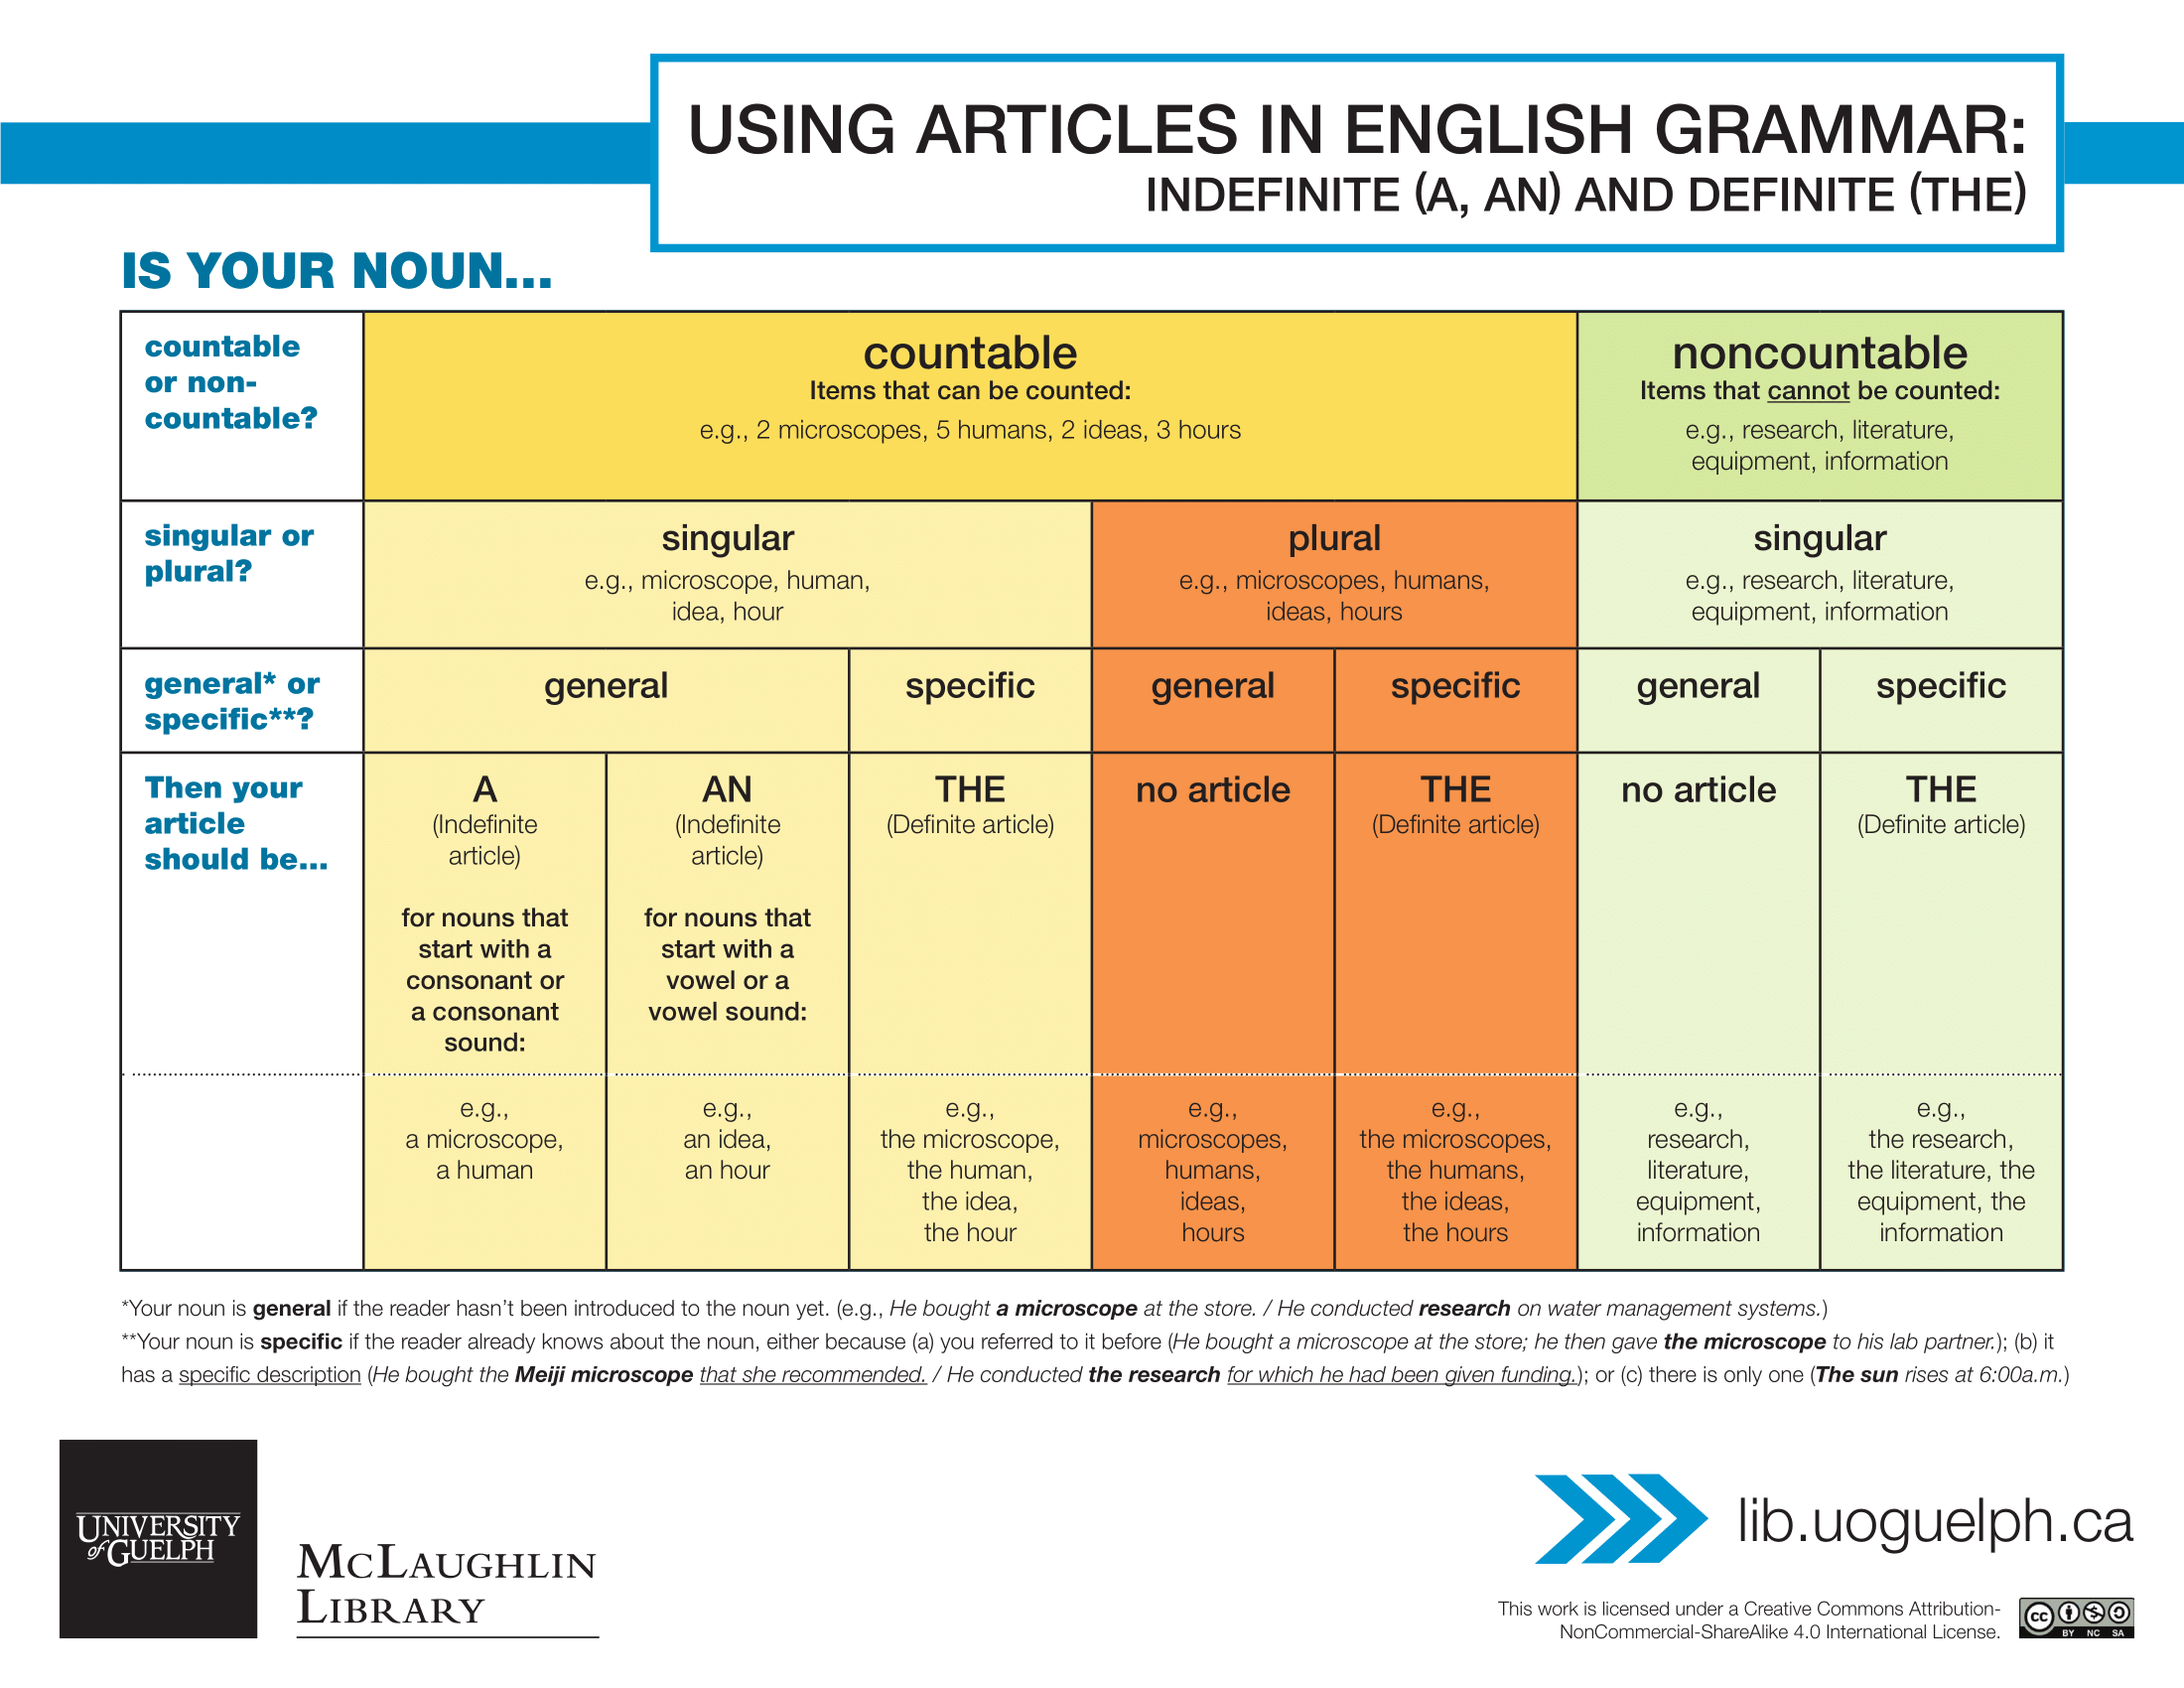 Handout: Using Articles in English Grammar: Indefinite (A, An) and Definite (The). Full transcript is available below